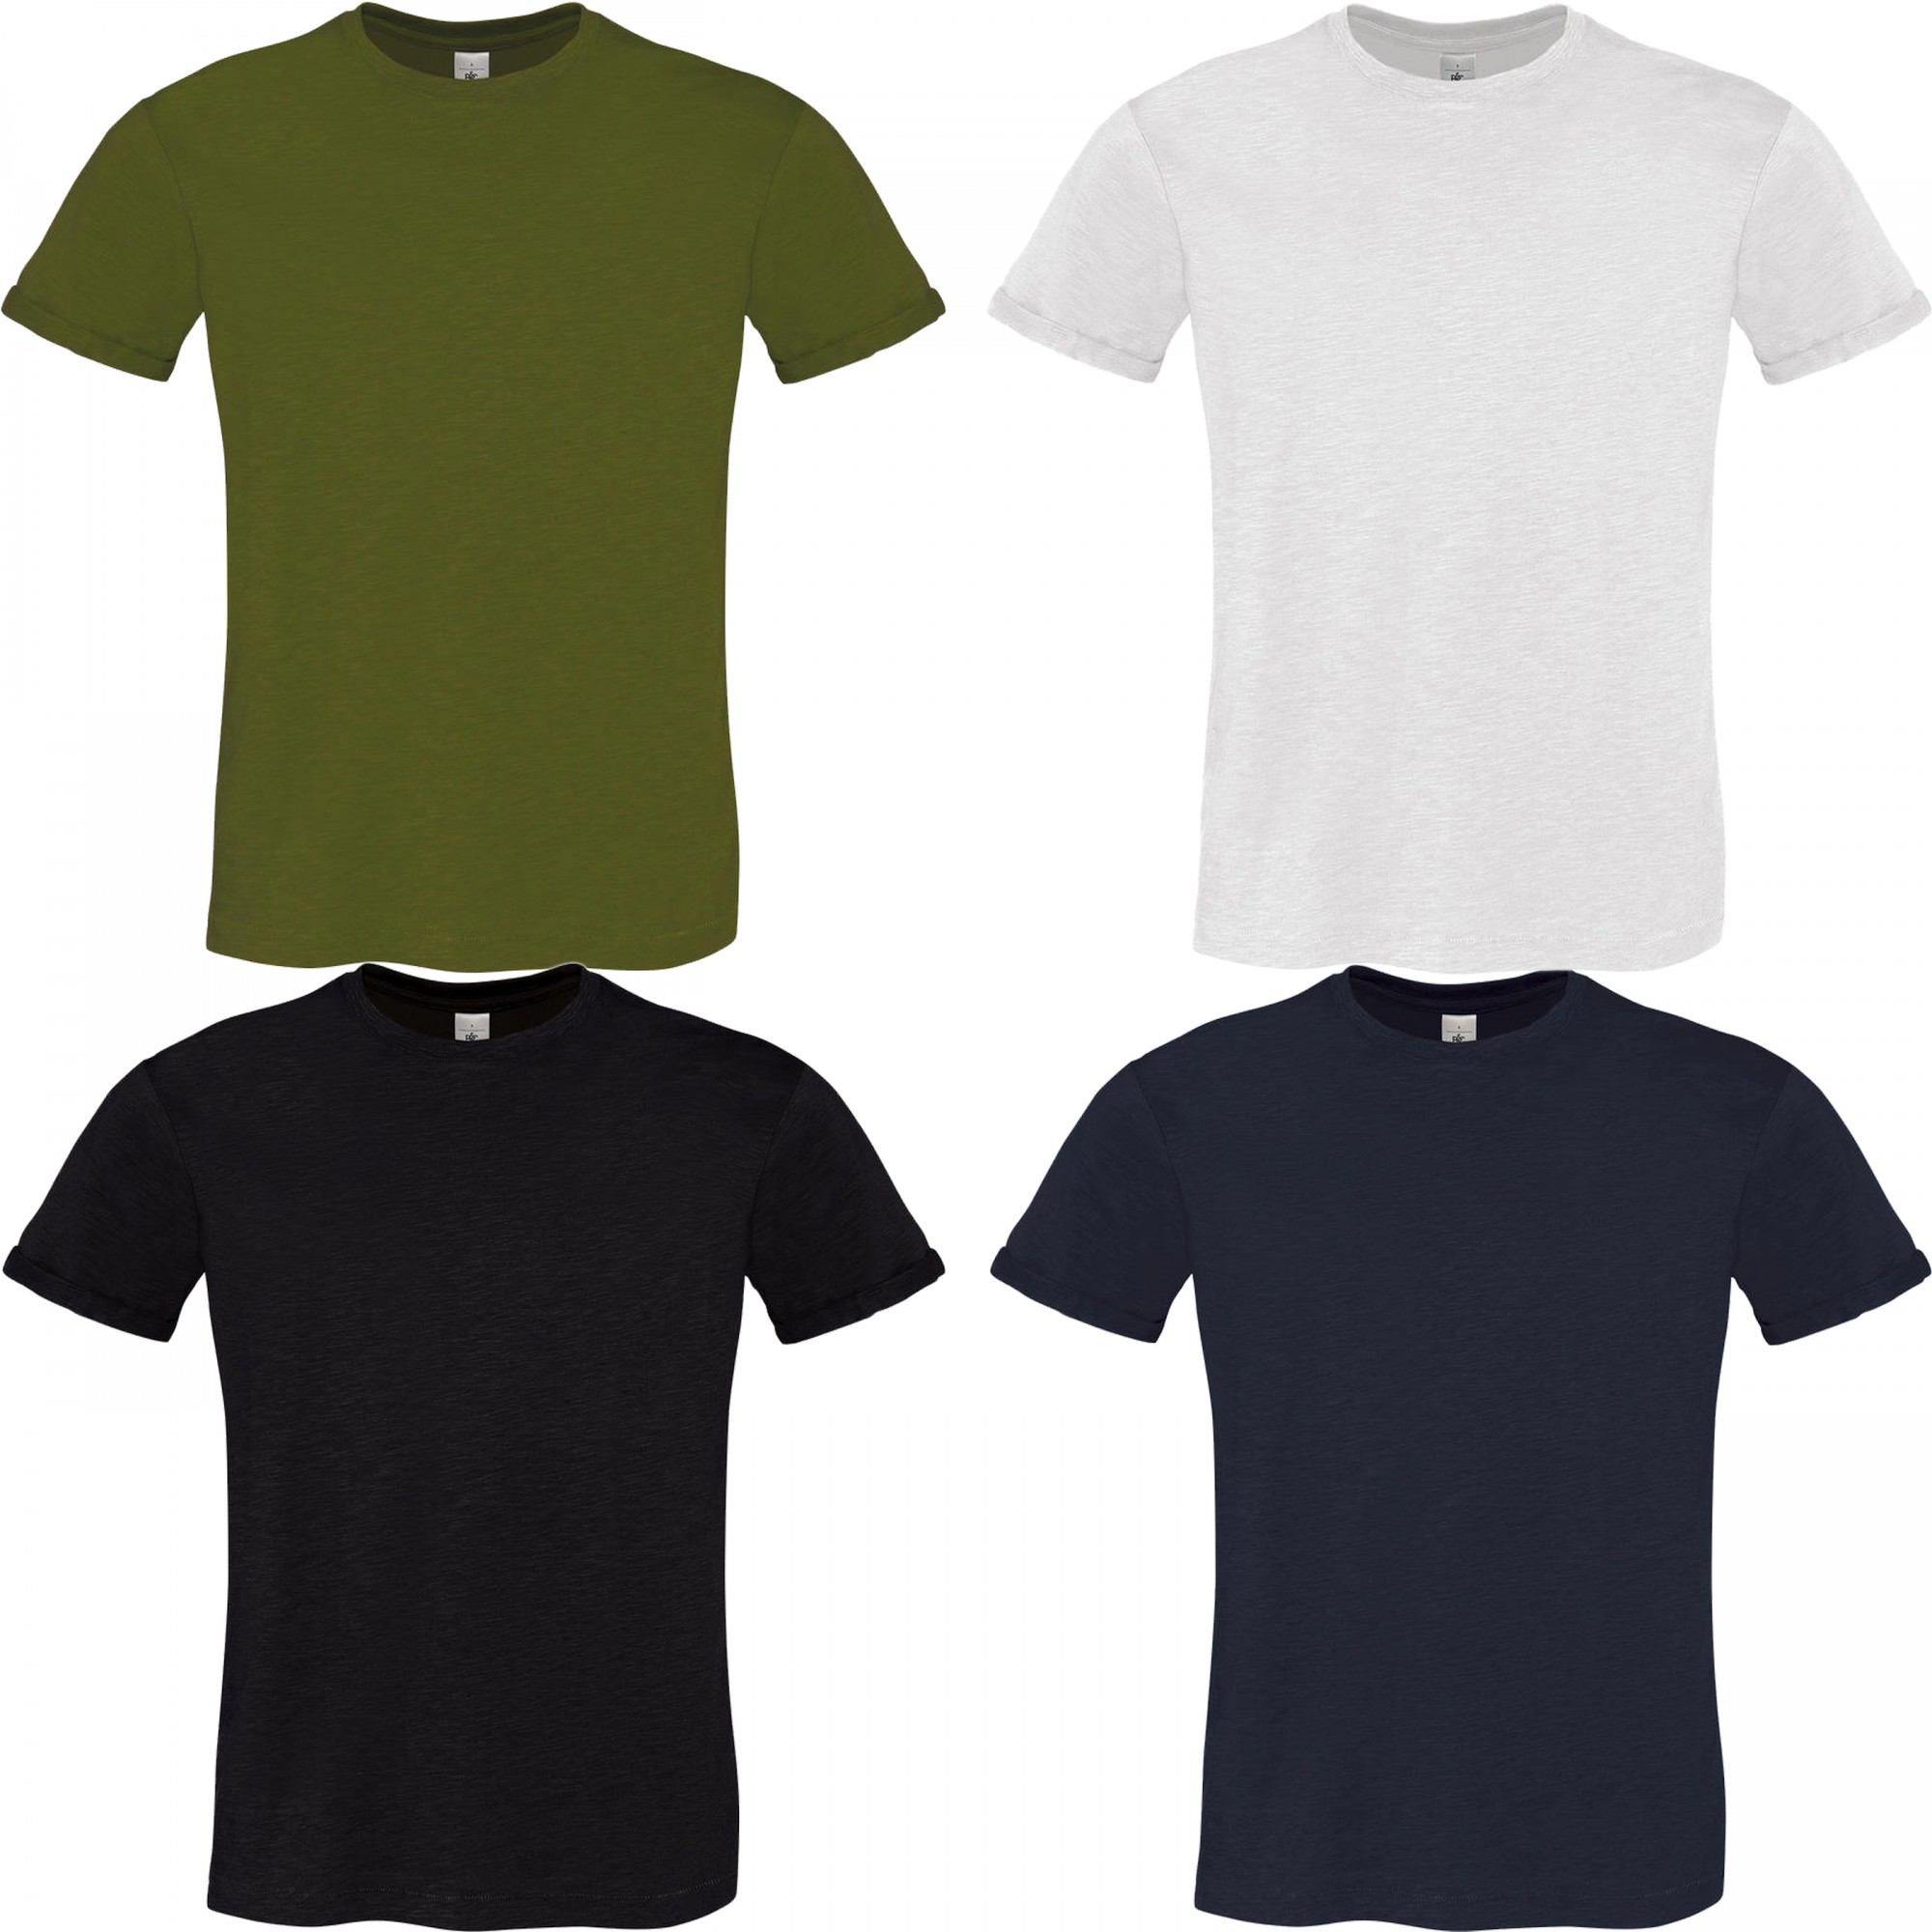 B&C: Modisches T-Shirt Too Chic Men TM035